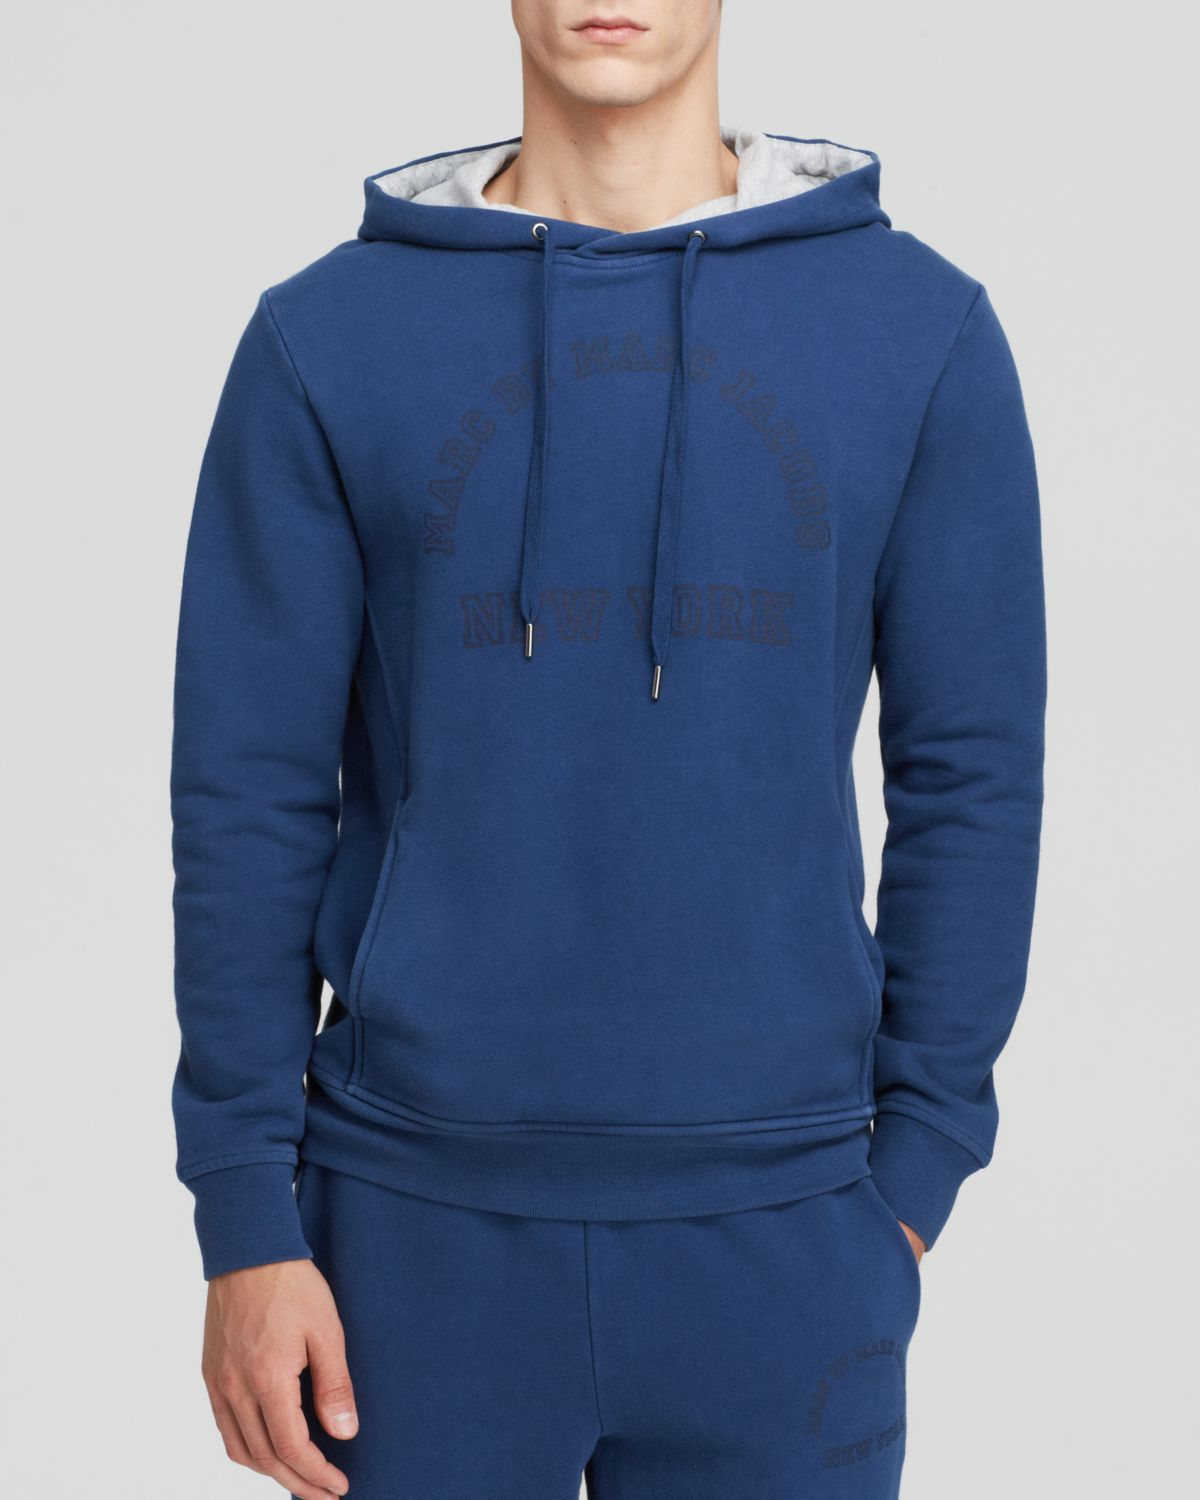 marc by marc jacobs logo pullover hoodie in blue for men lyst. Black Bedroom Furniture Sets. Home Design Ideas